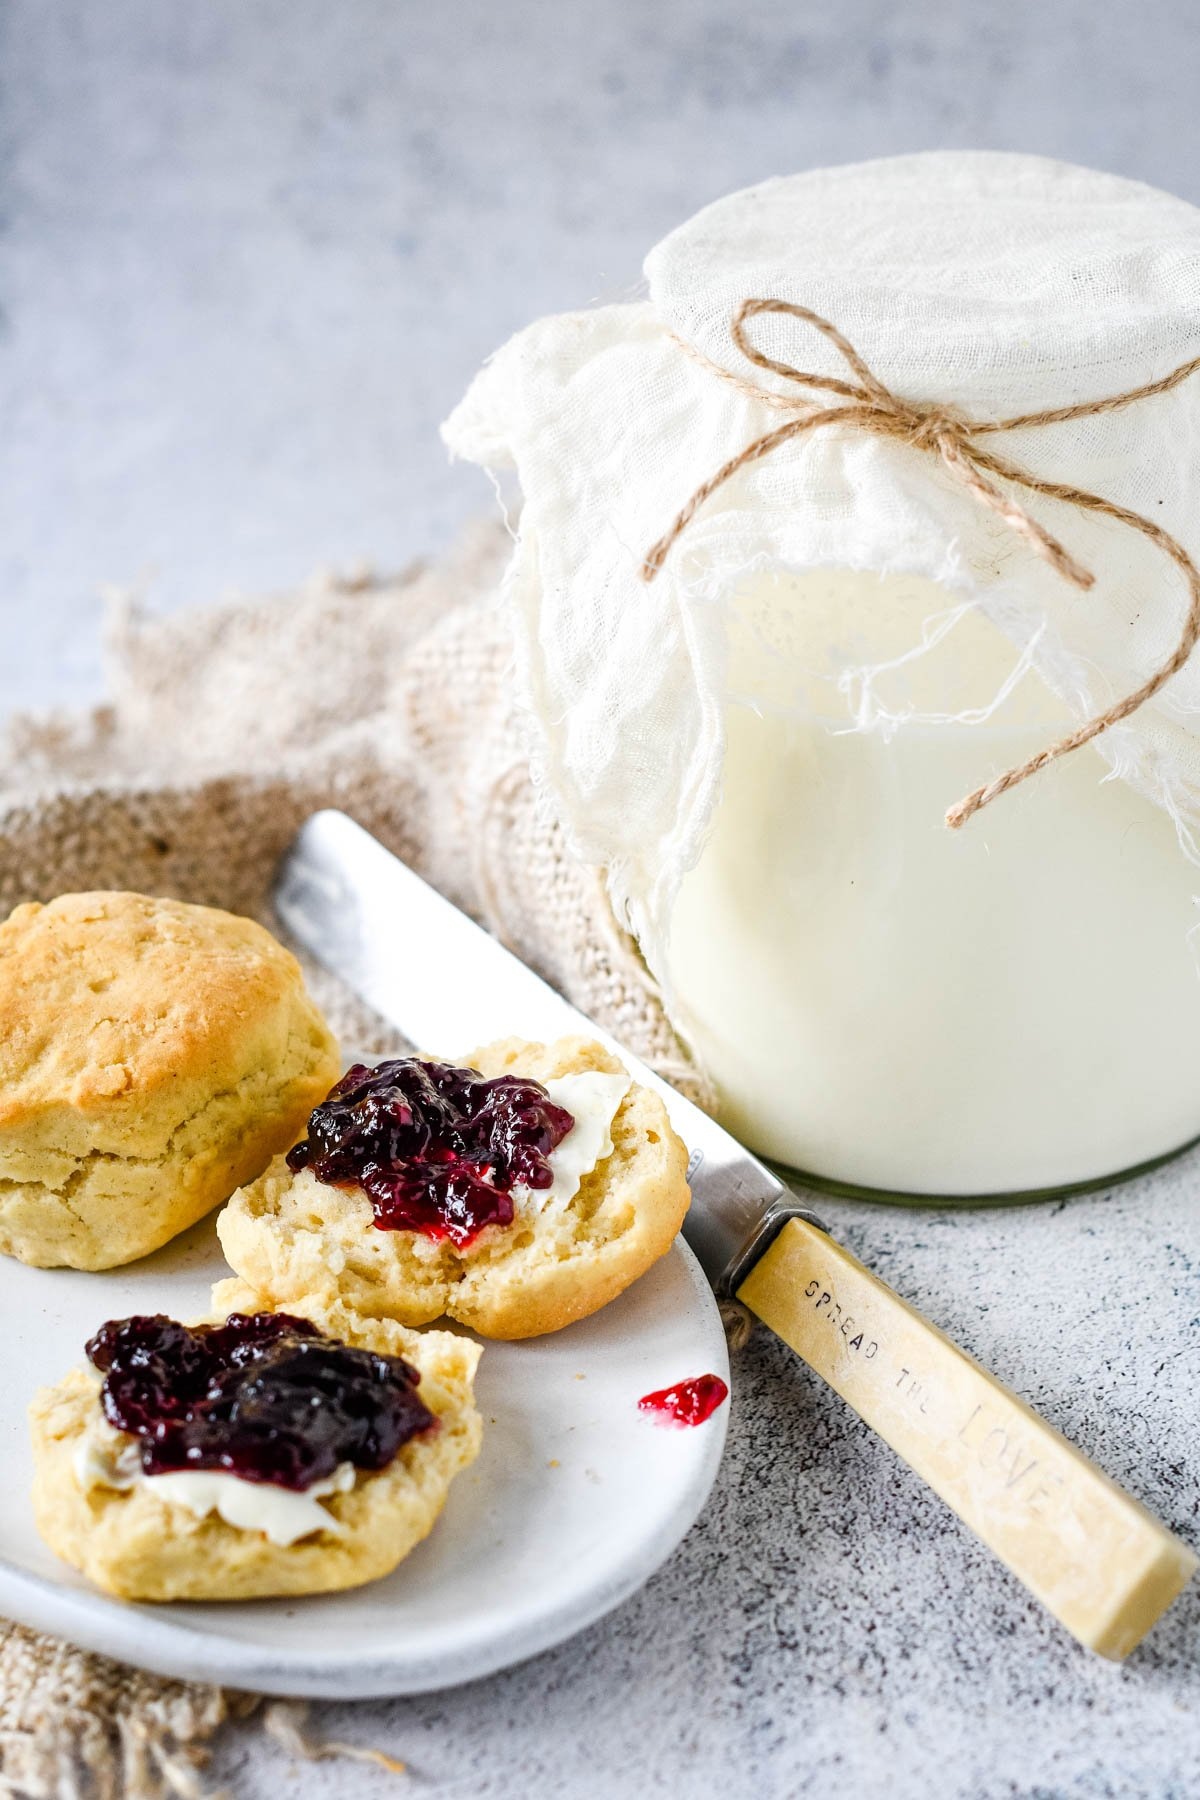 jammy scones beside the jar